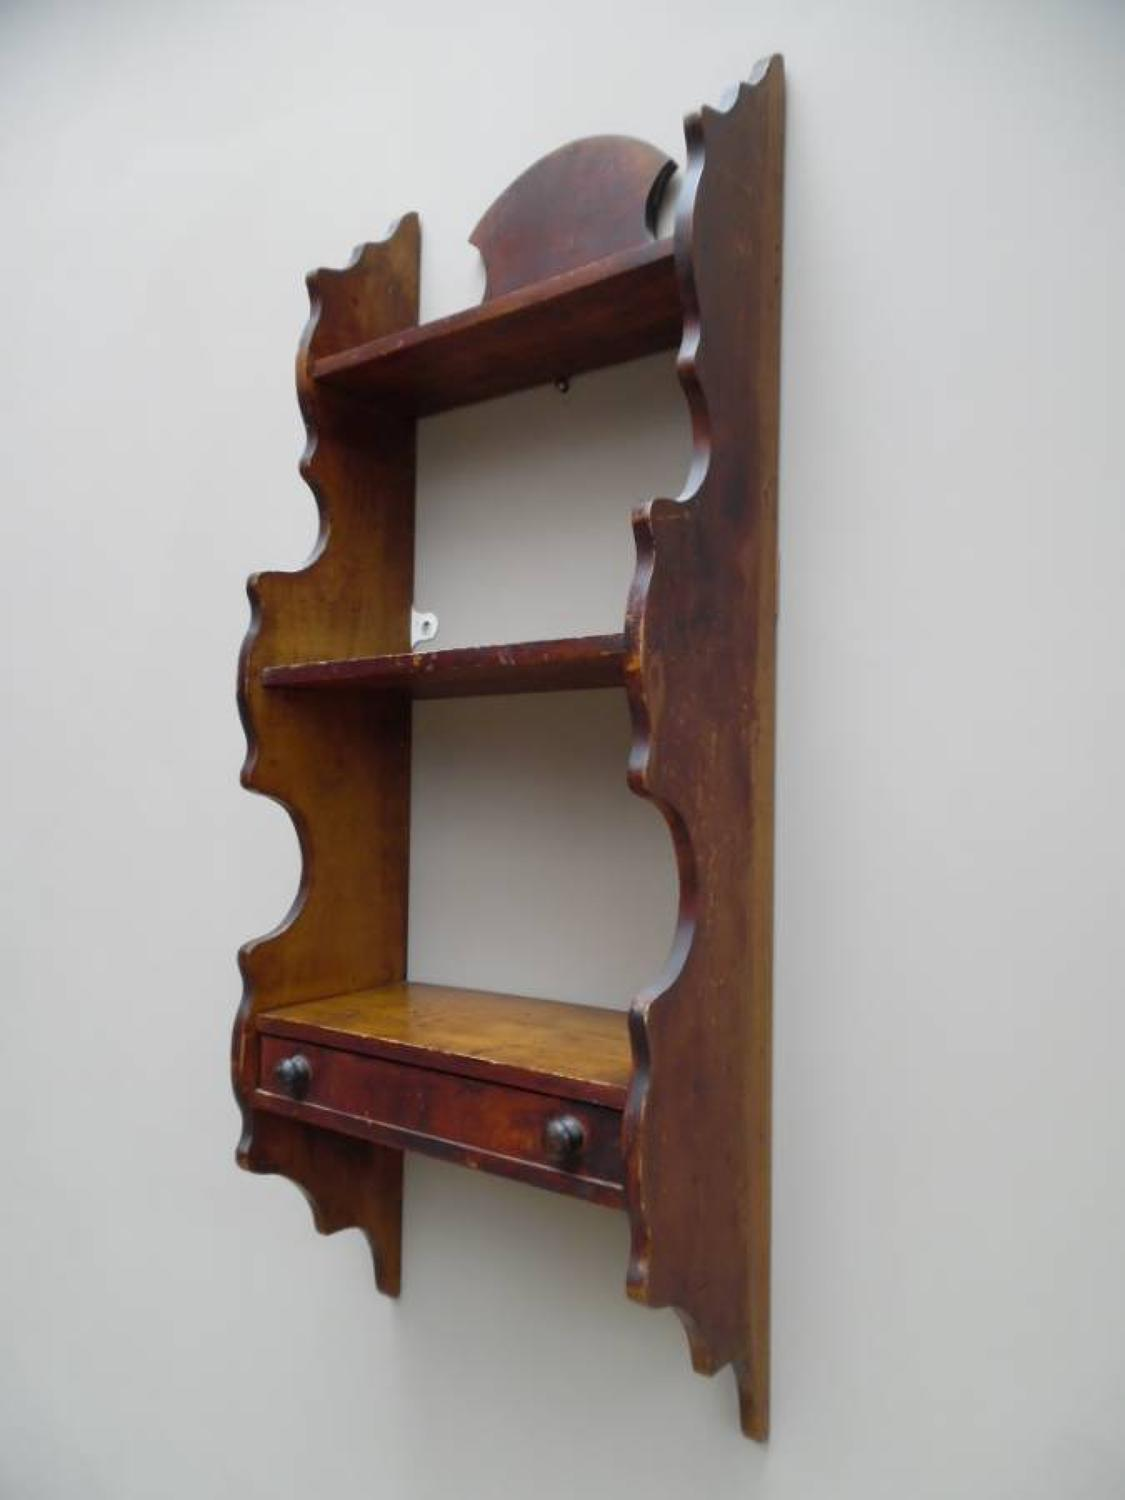 Victorian Pine Wall Shelves in Original Paint